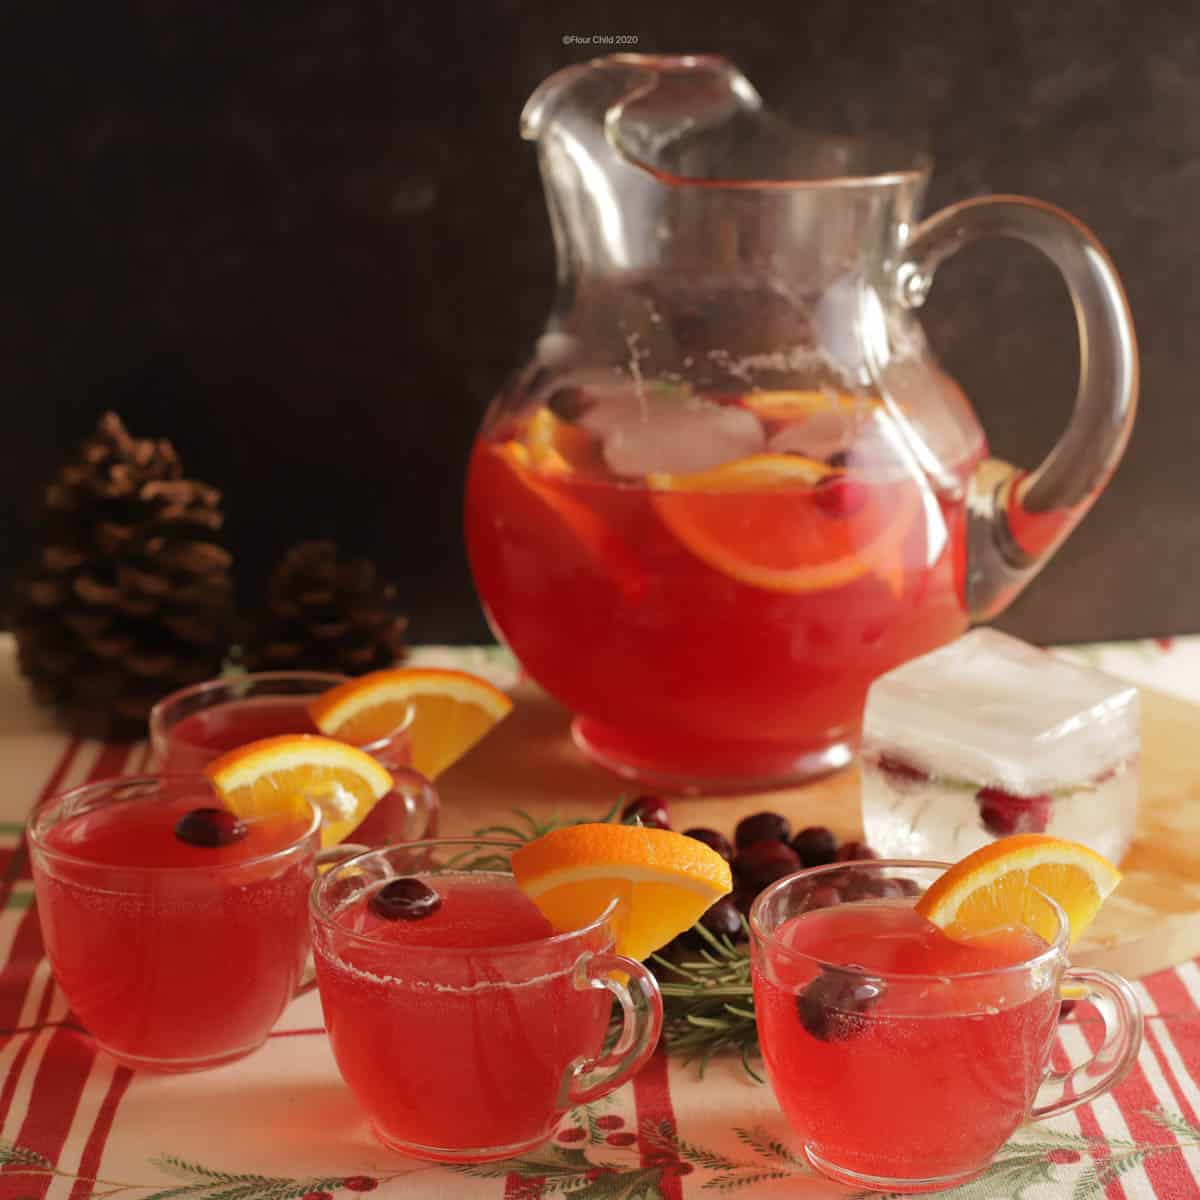 A pitcher of pink non alcoholic holiday punch with slices of orange and cranberries inside, with